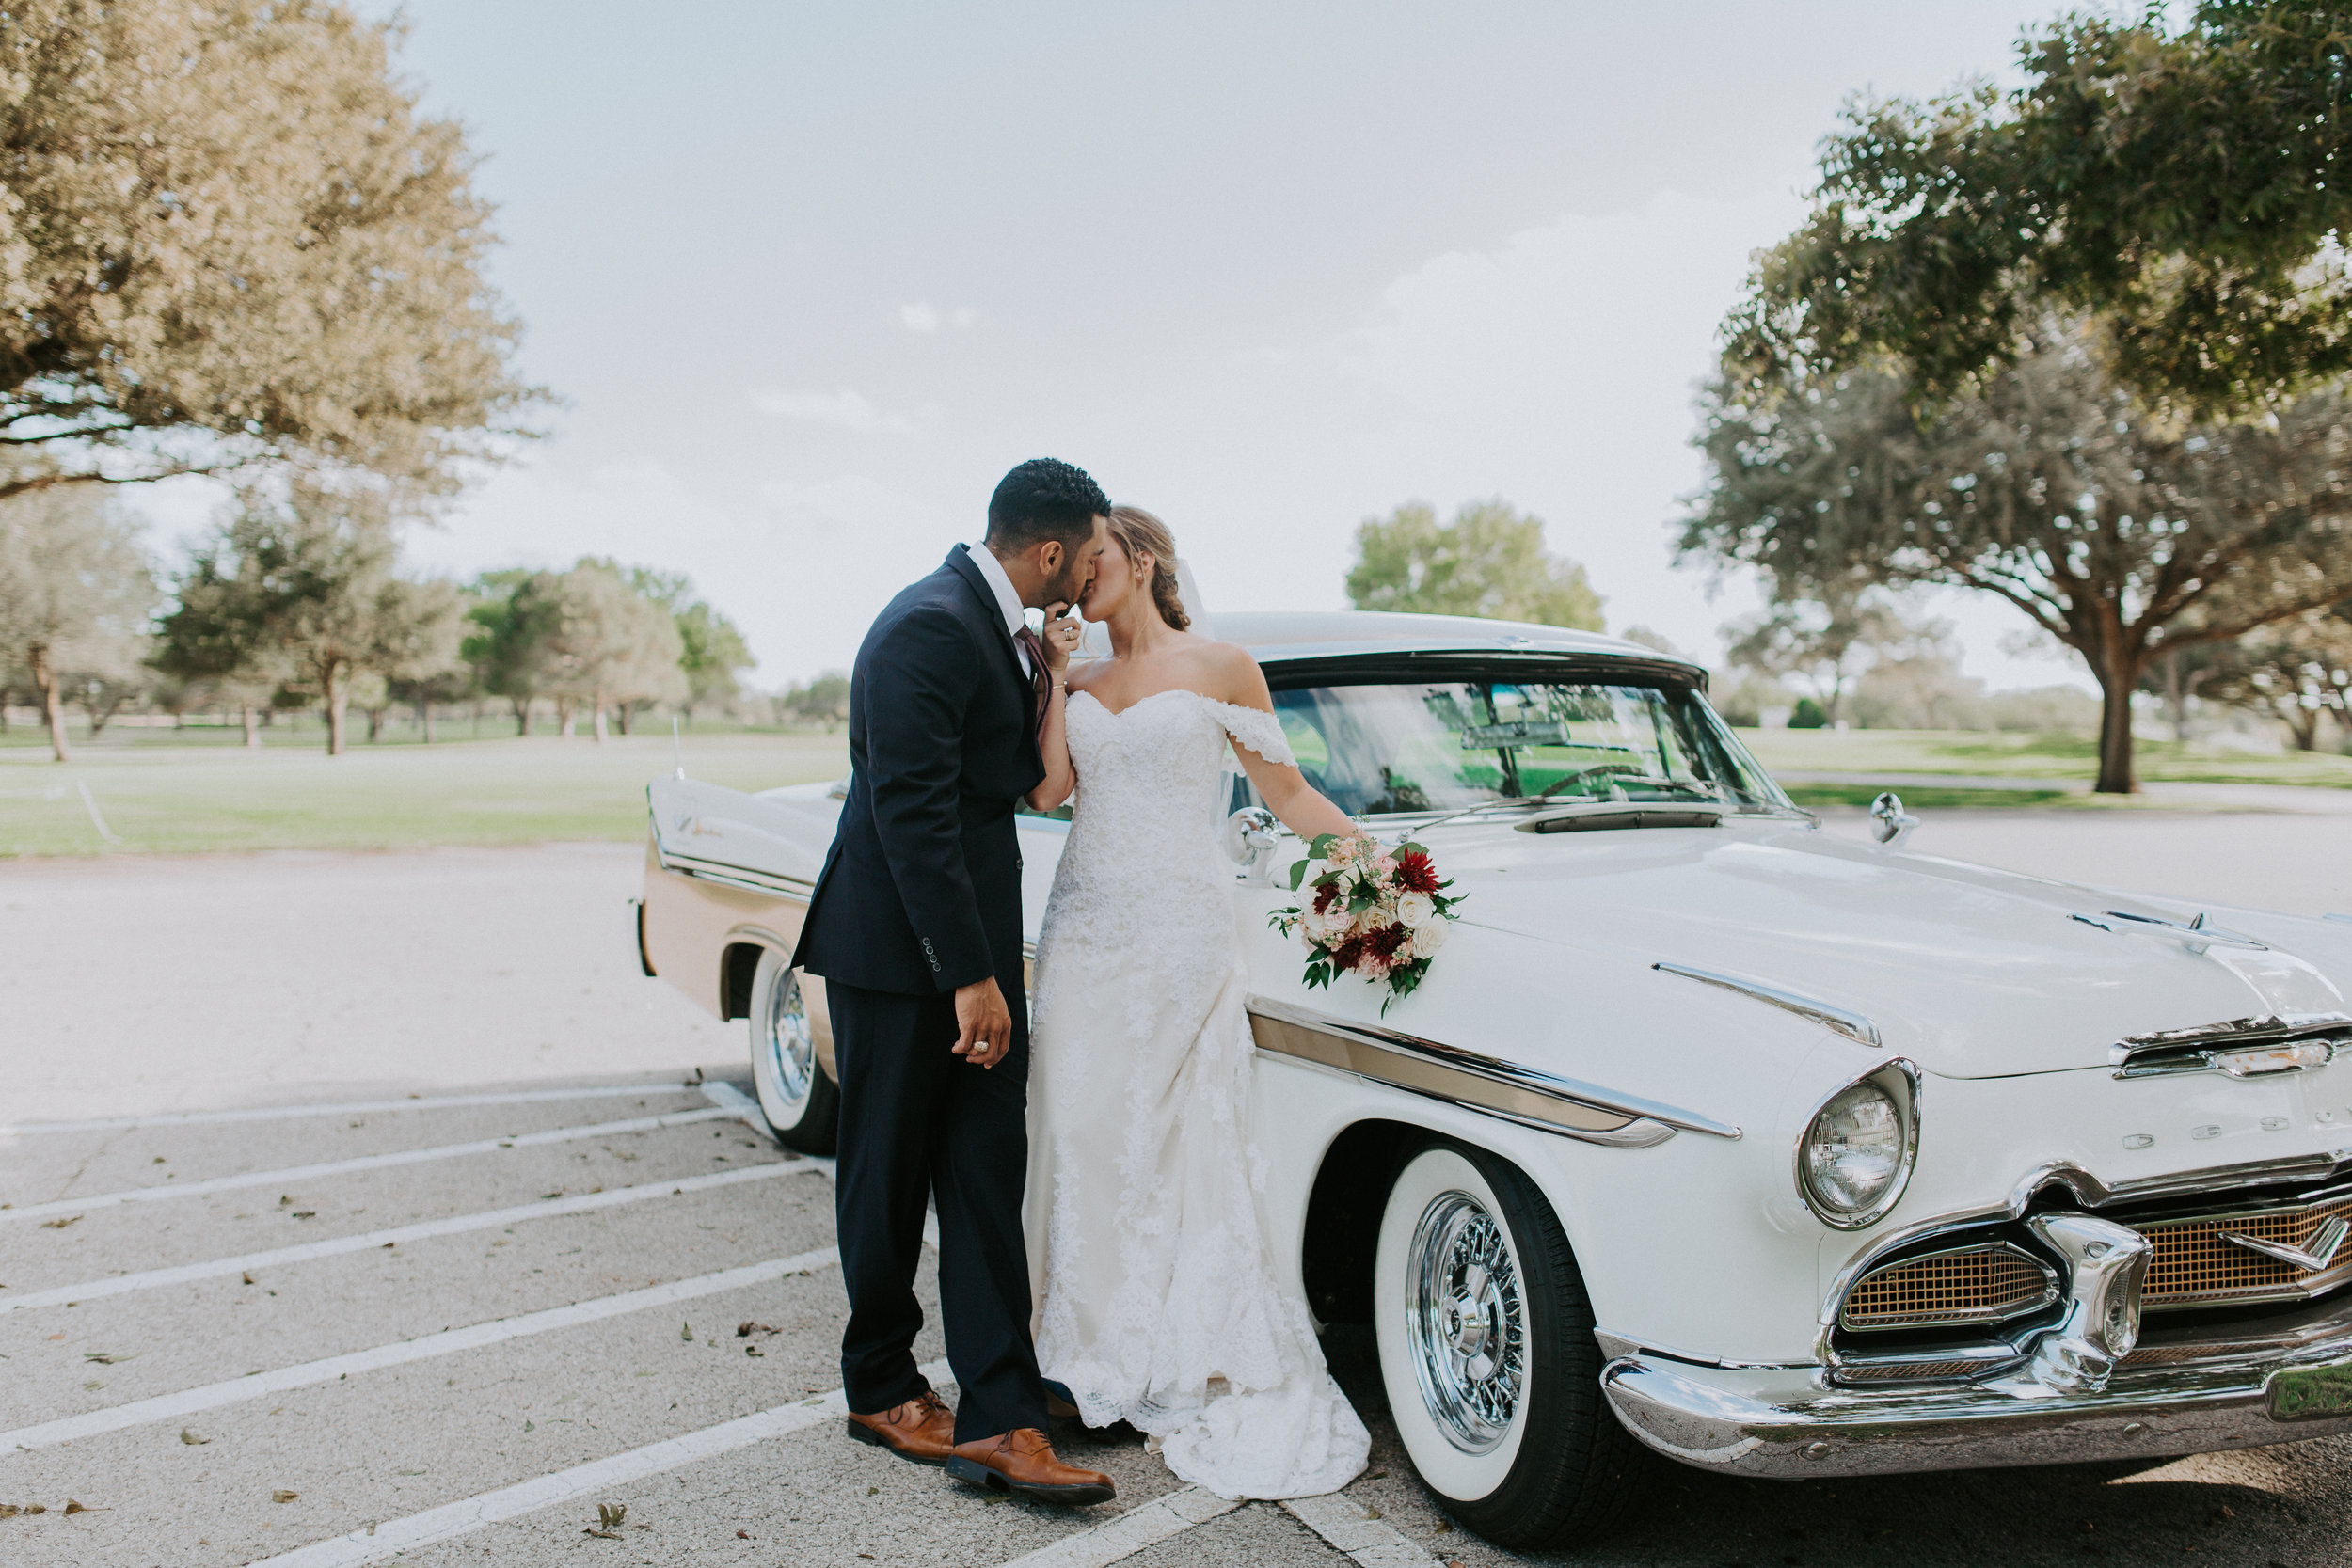 SABRINA & DHALSTON - SAN ANGELO WEDDING